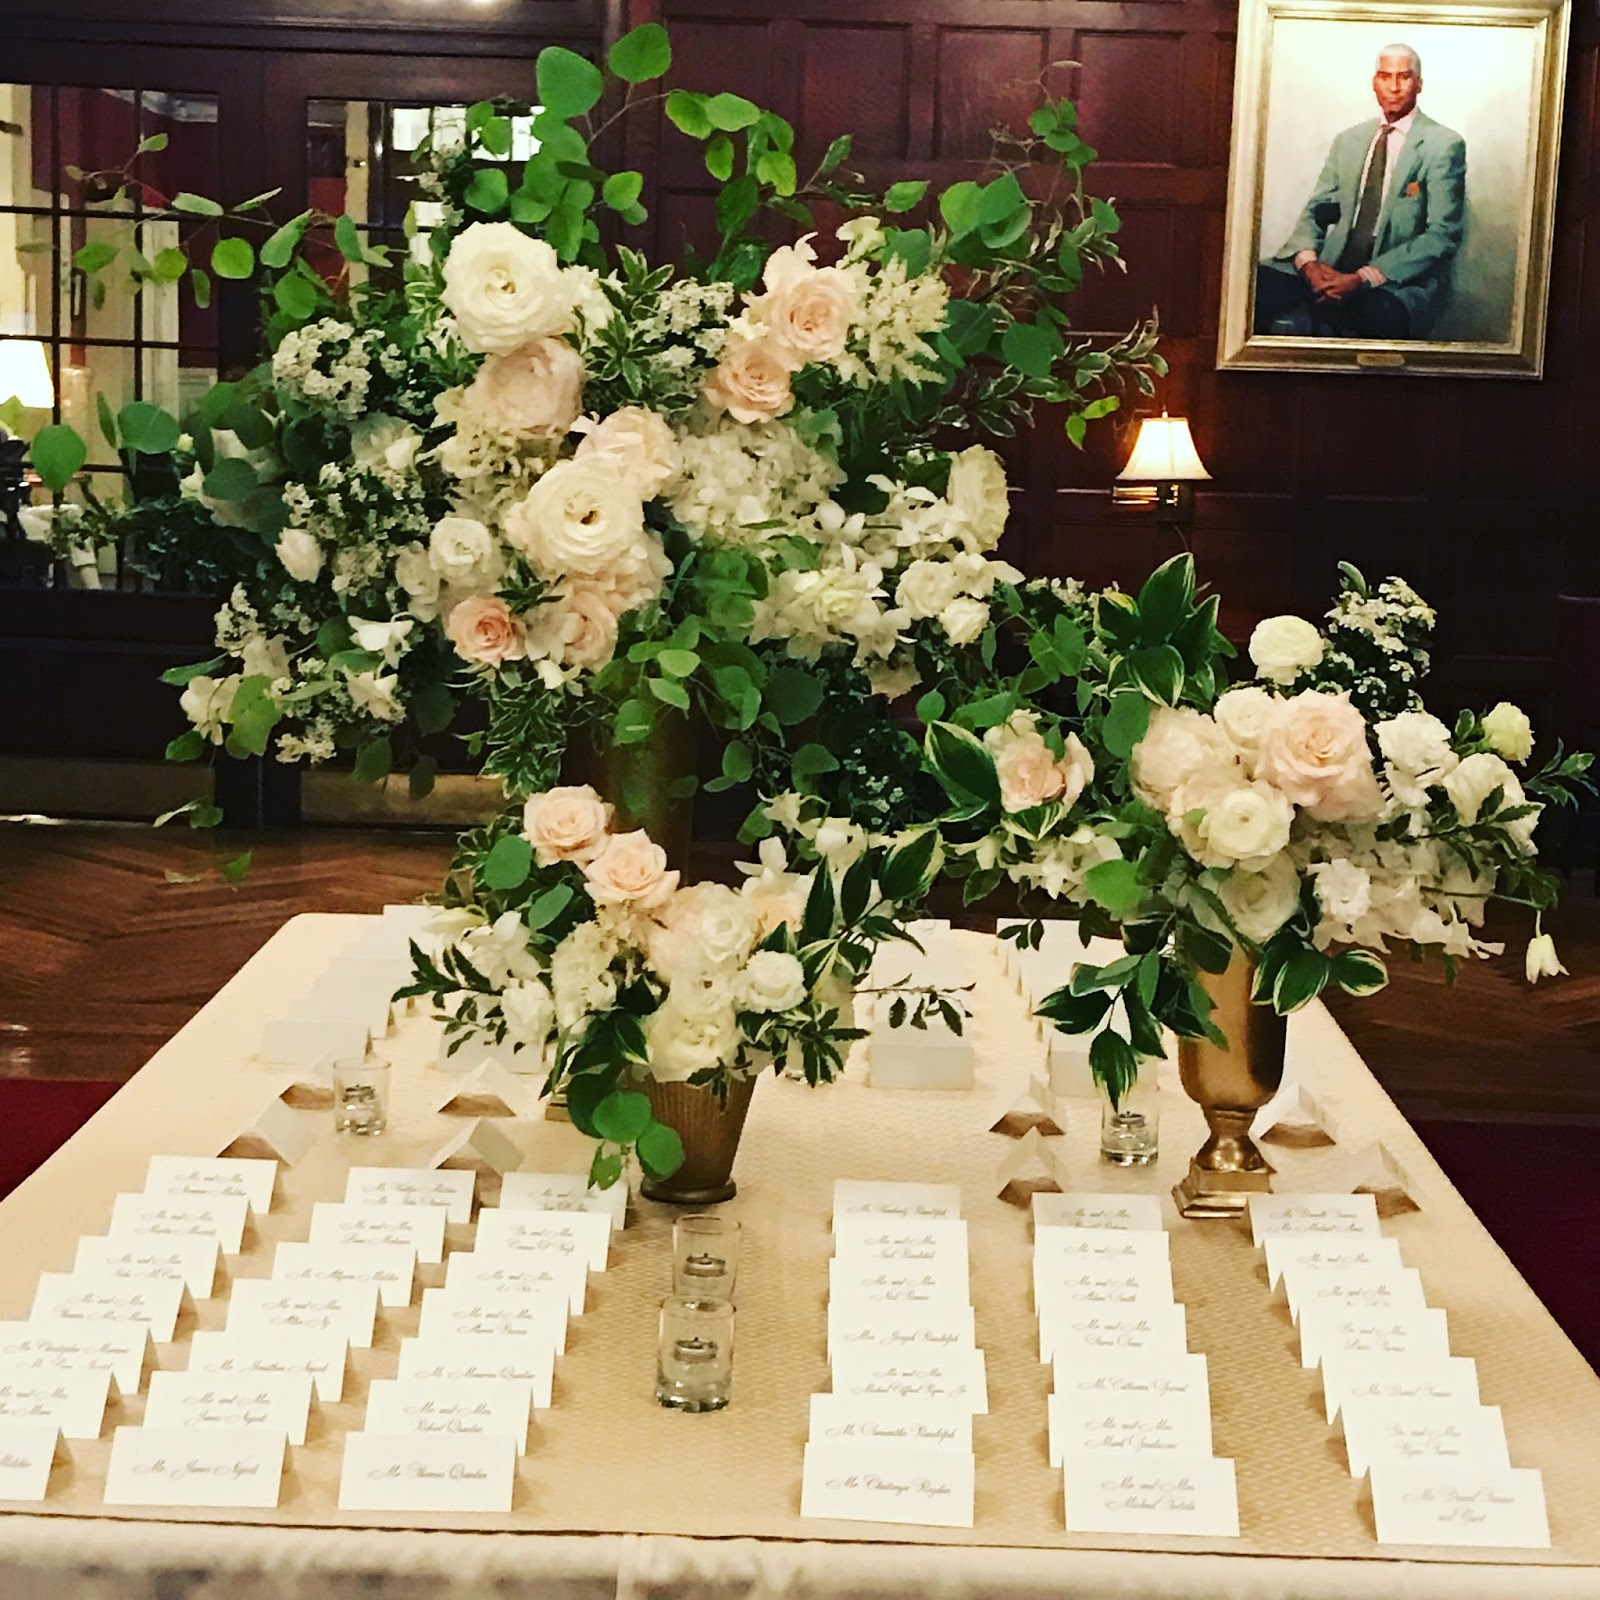 Wedding event flower arrangements in nyc making decisions on flowers for bouquets and centerpieces can be overwhelming for you right doesnt worry about that our professional team will walk you izmirmasajfo